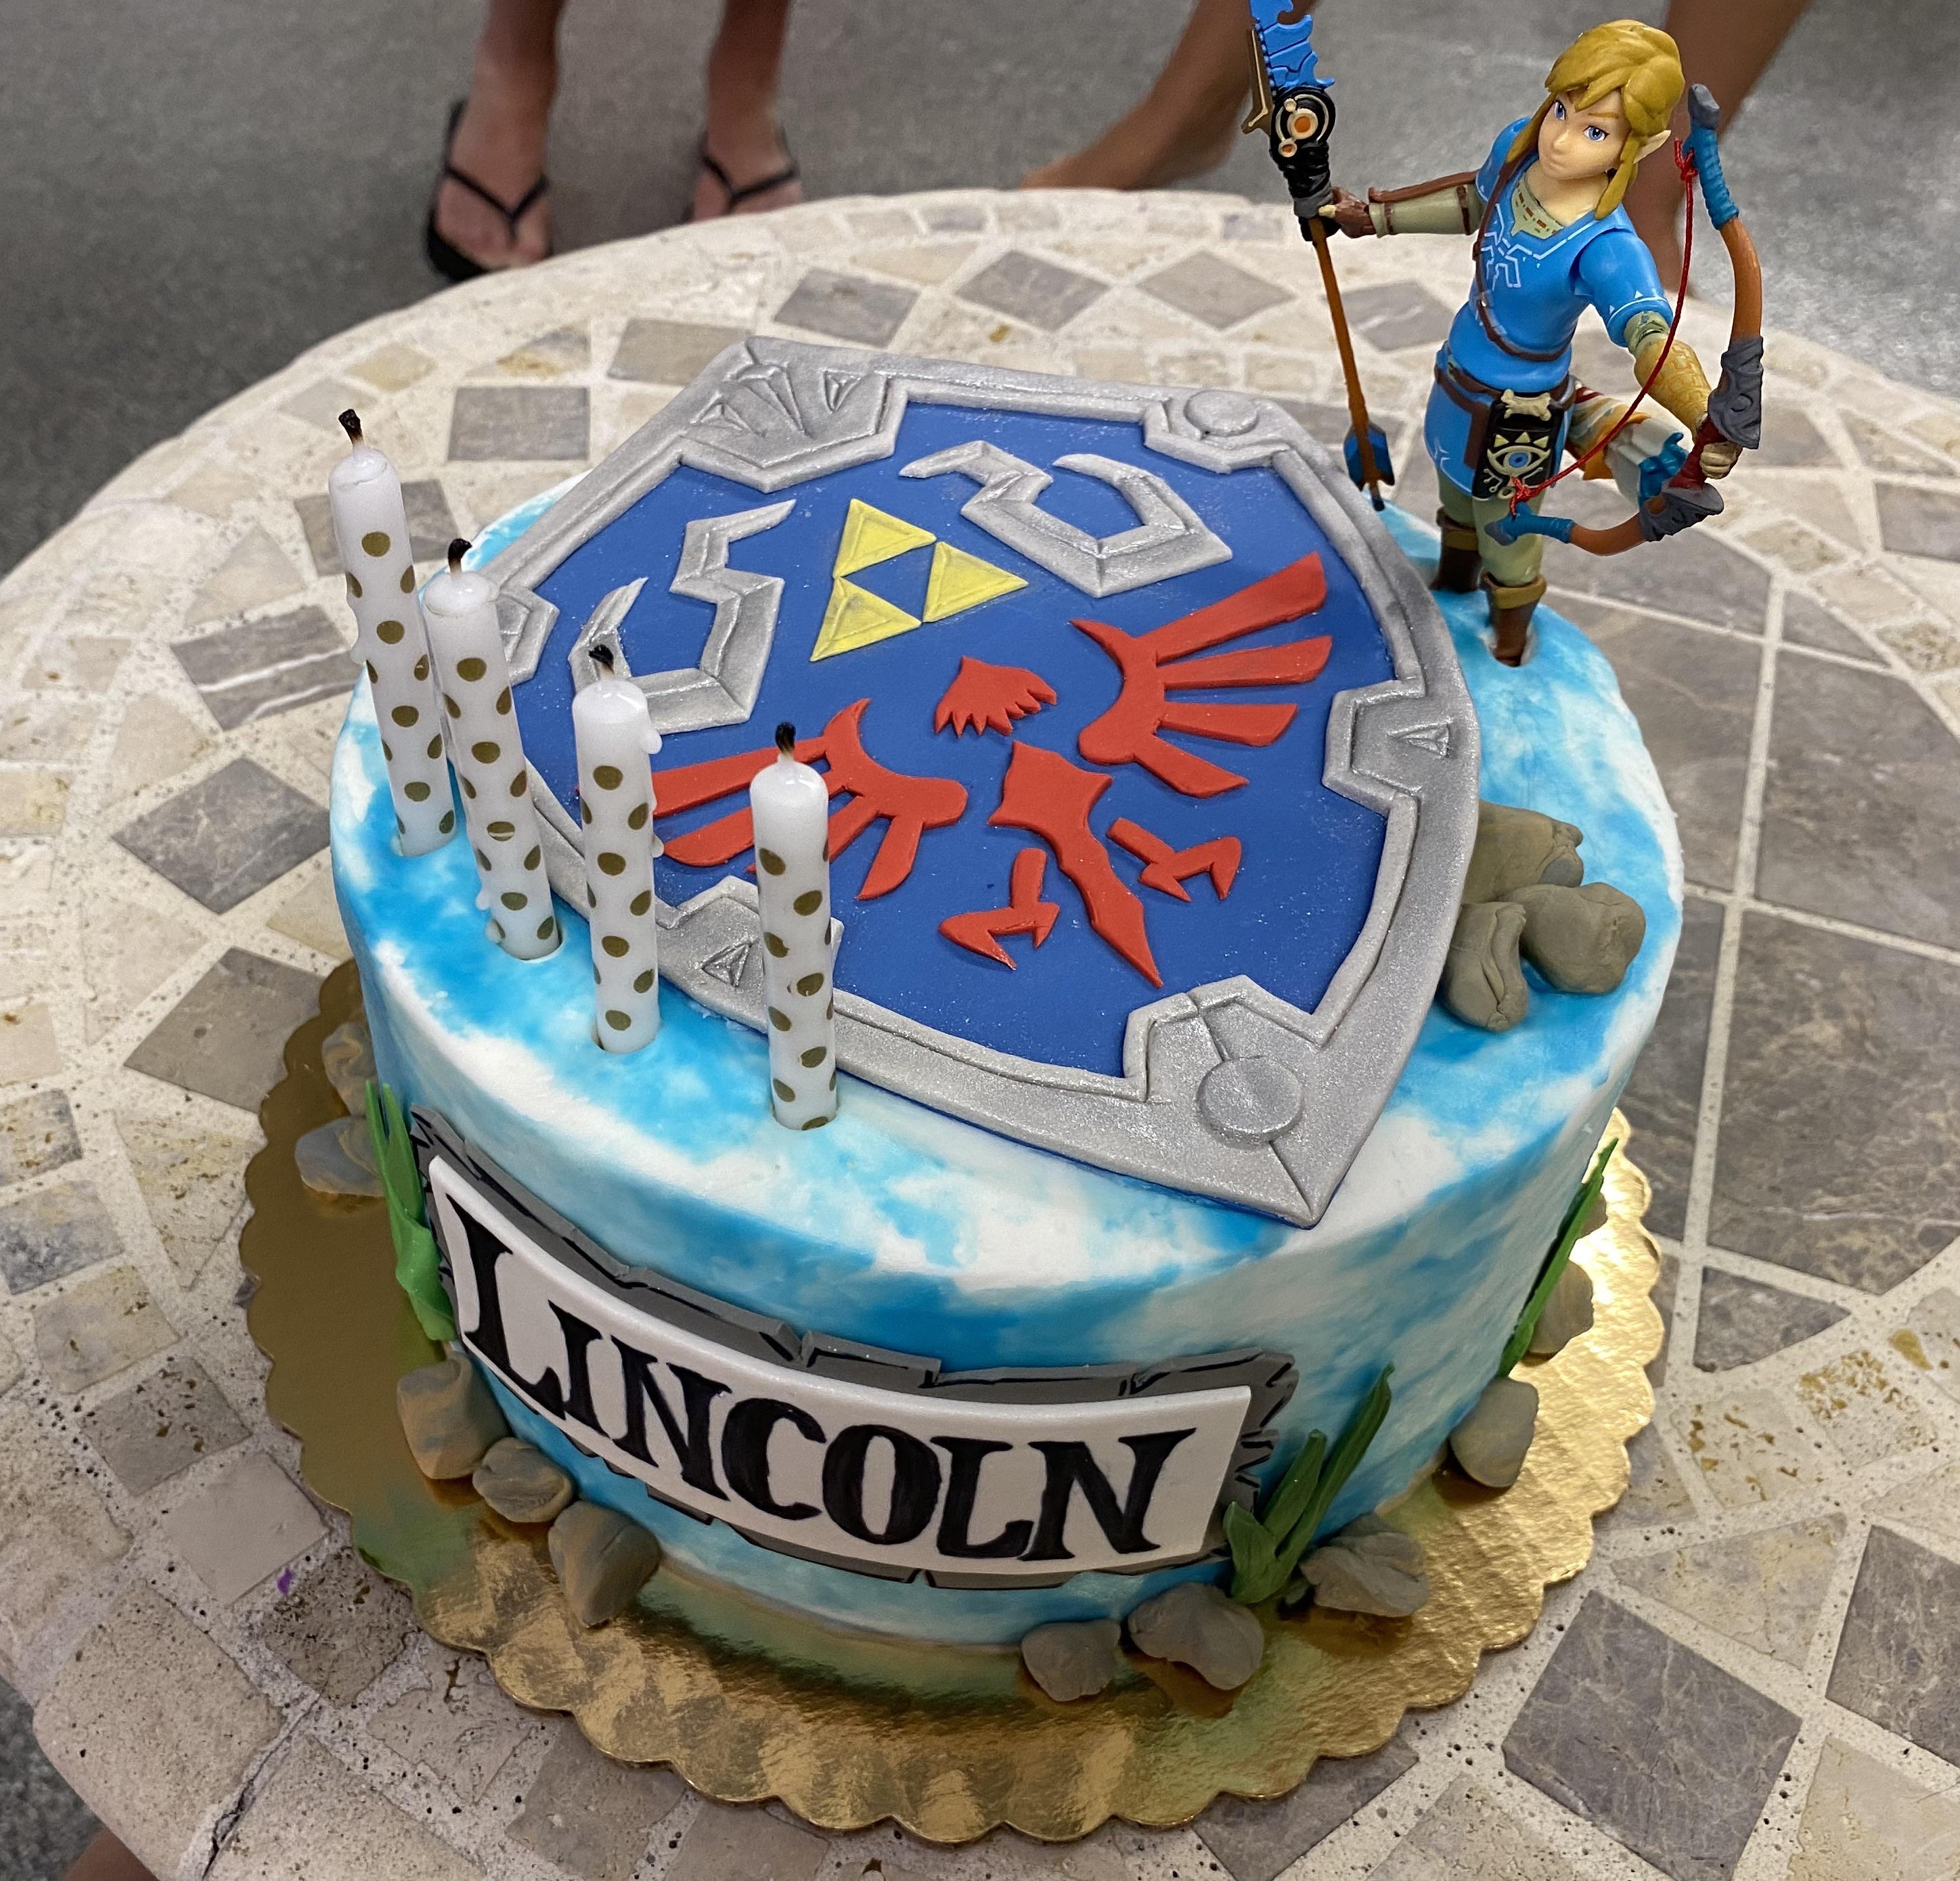 Botw Zelda Birthday Cake For My Son Lincoln Or As I Call Him Link Zelda